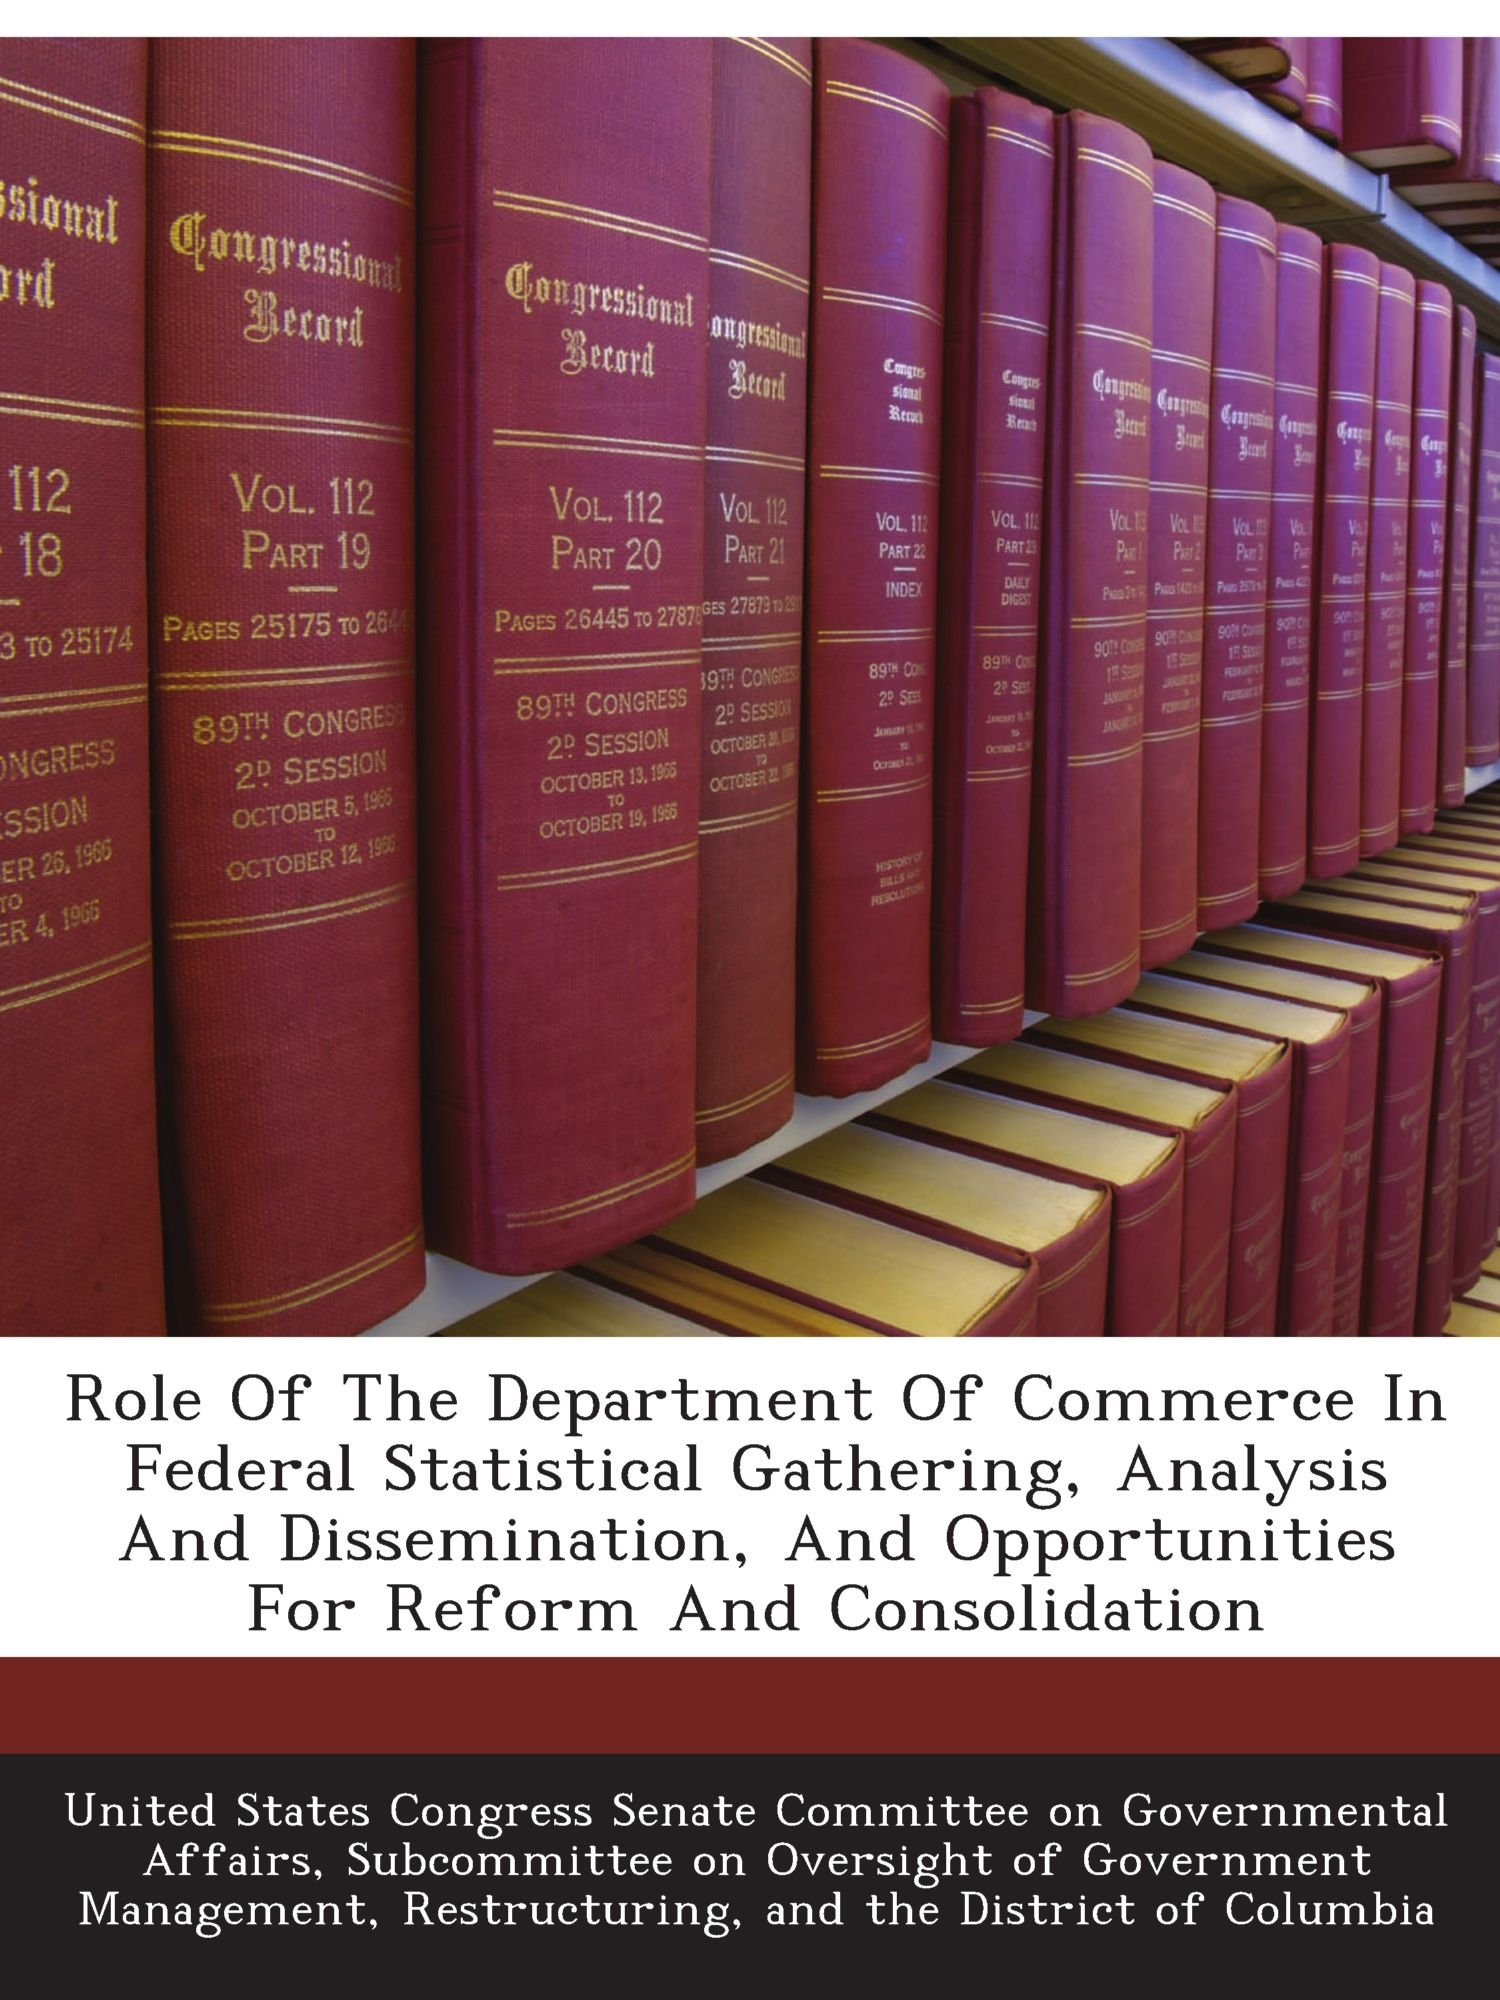 role-of-the-department-of-commerce-in-federal-statistical-gathering-analysis-and-dissemination-and-opportunities-for-reform-and-consolidation